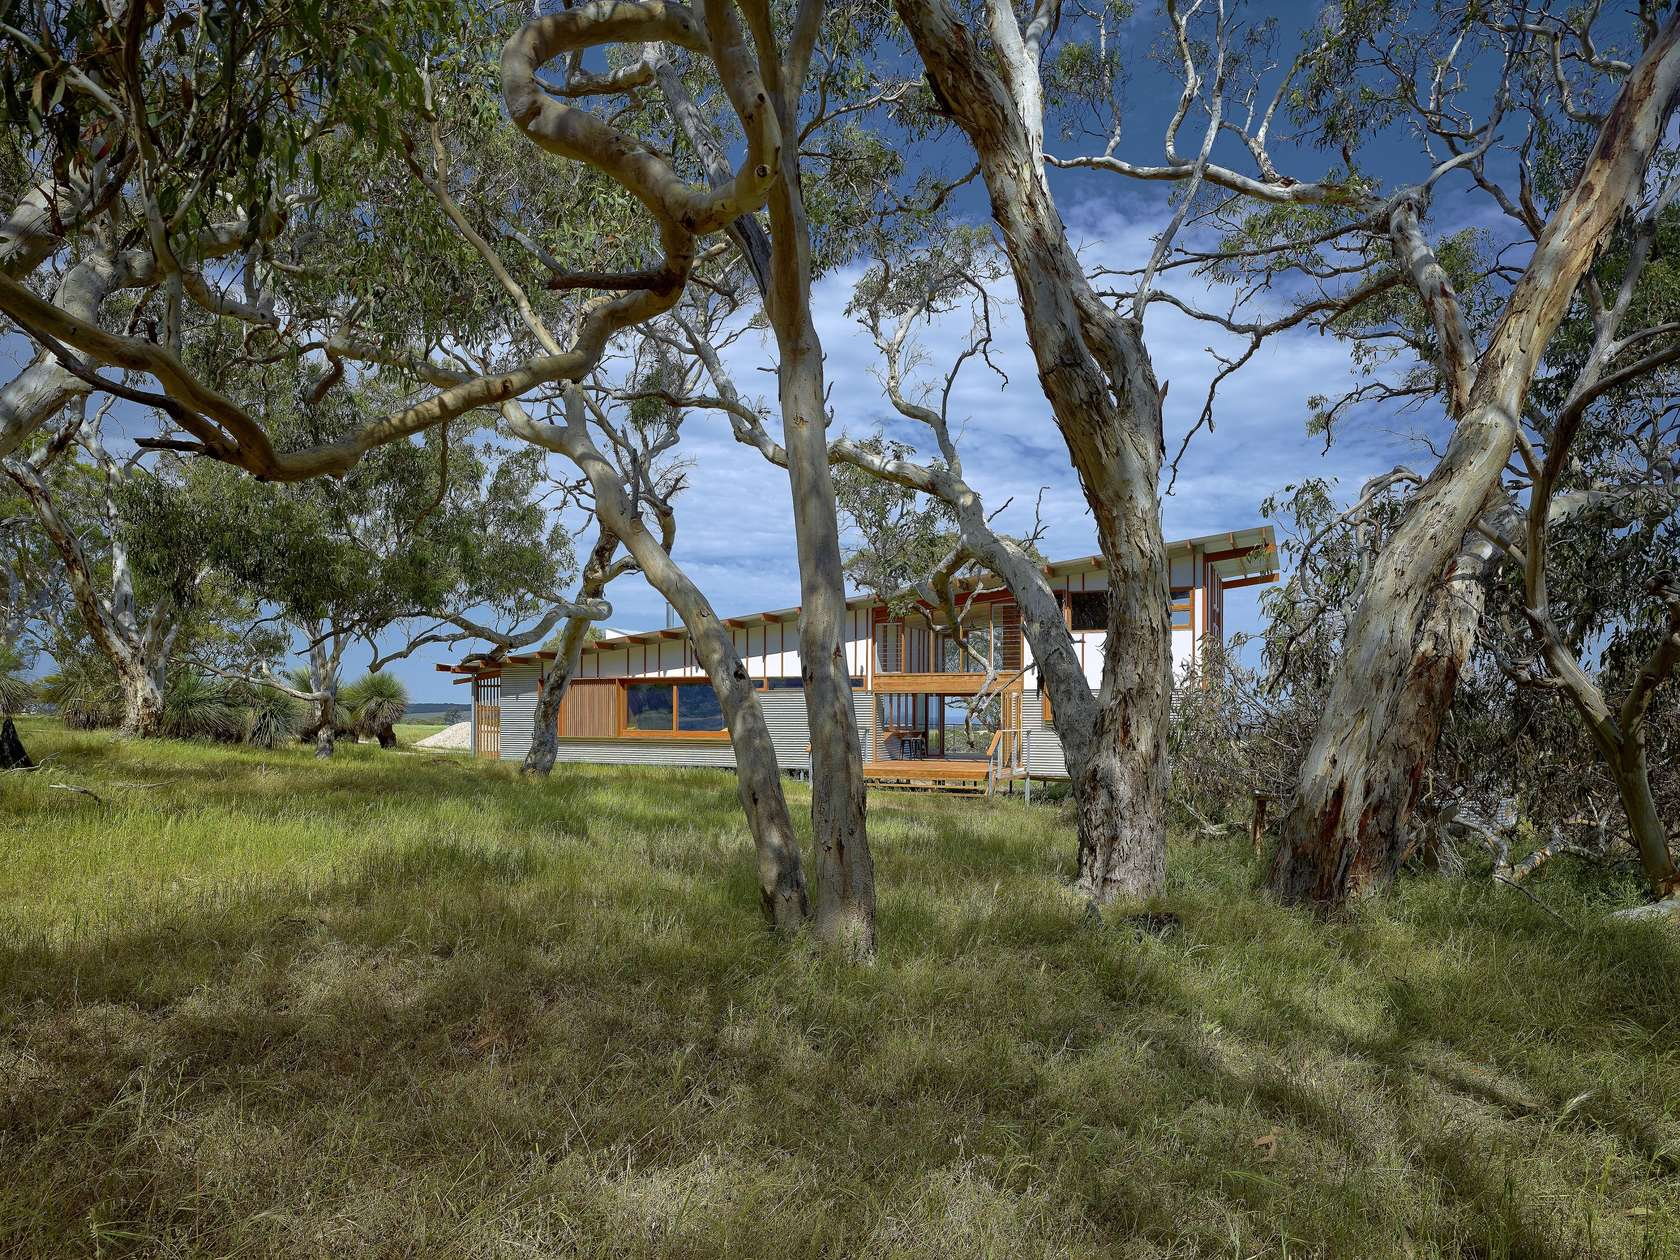 Waitpinga Retreat